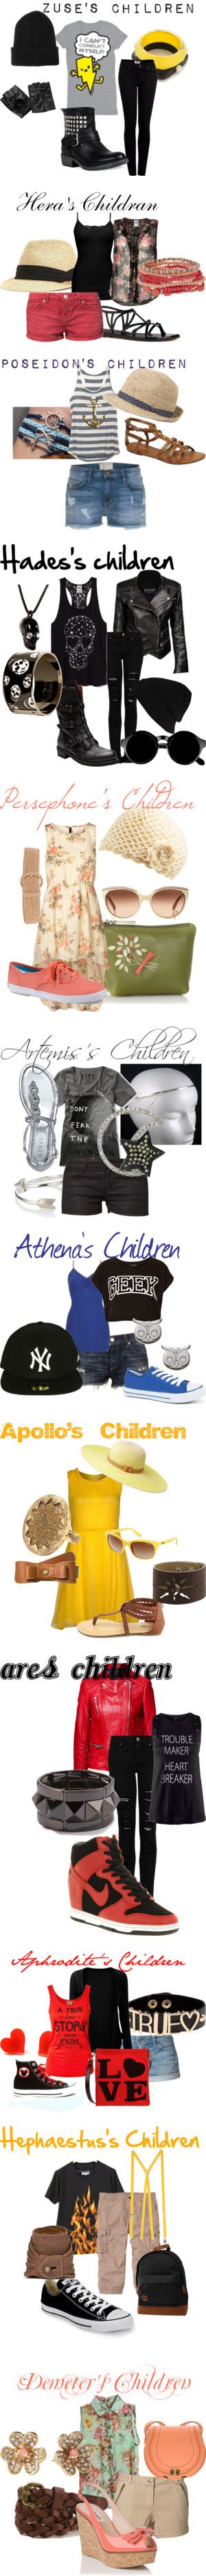 """Greek Gods and Godesses"" by iskbug on Polyvore"